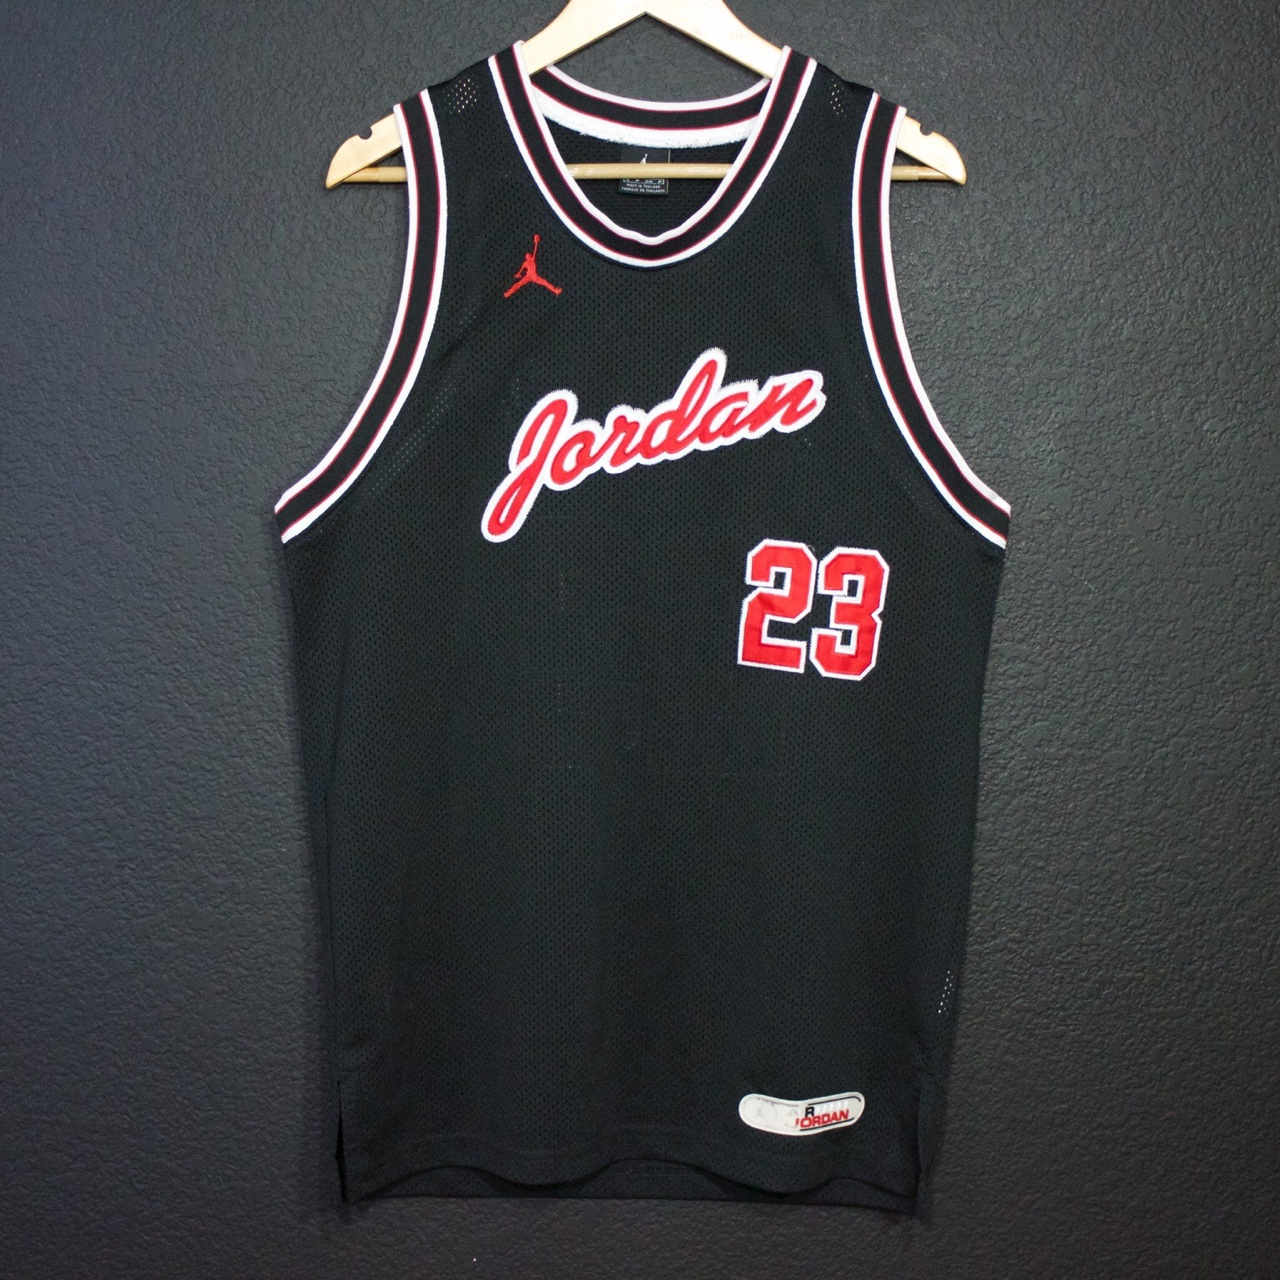 online retailer 4ba2d fb095 Michael Jordan Jersey Black and Red Size Small.... - Depop